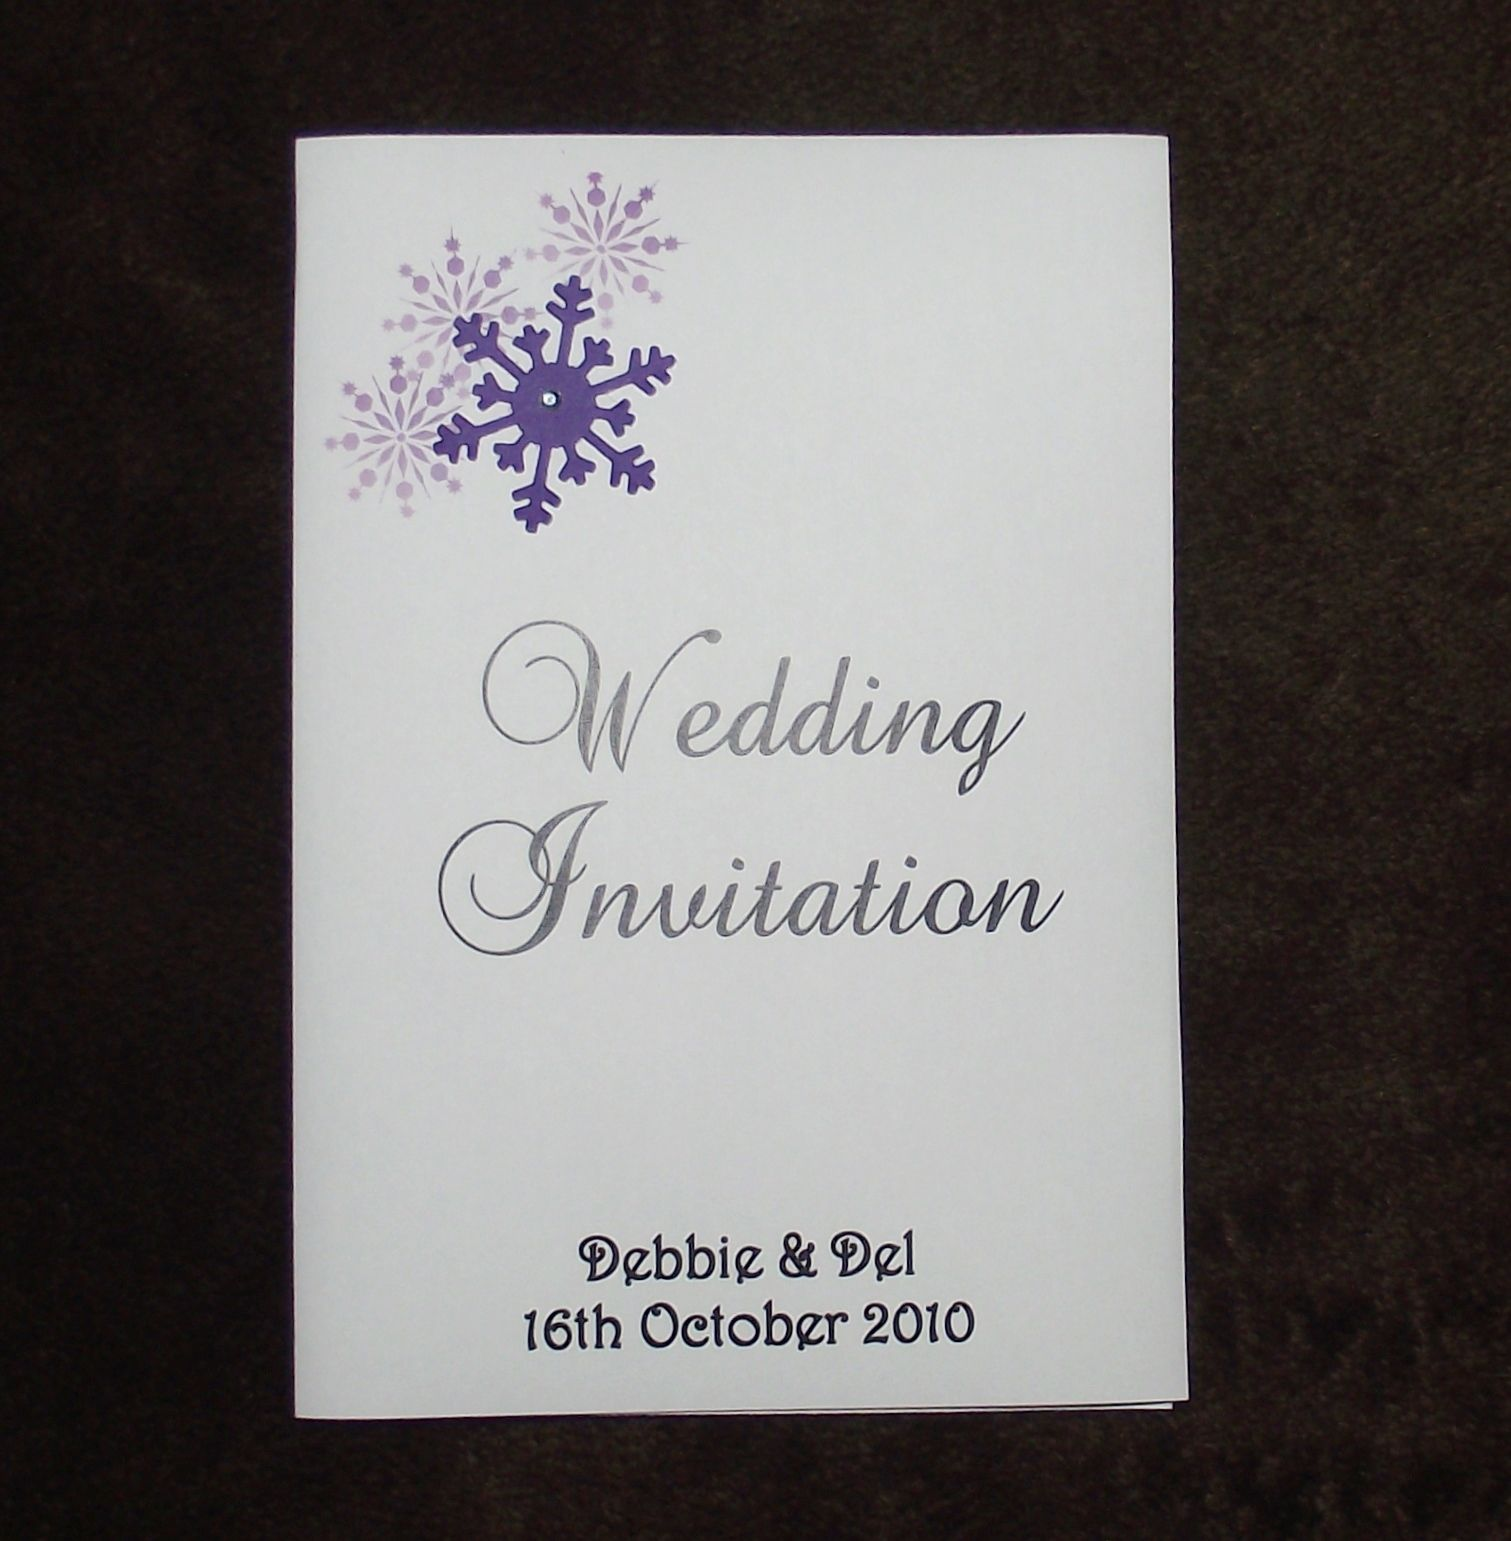 Wedding Invitations Evening Invitation Personalised Snowflake Corner ...